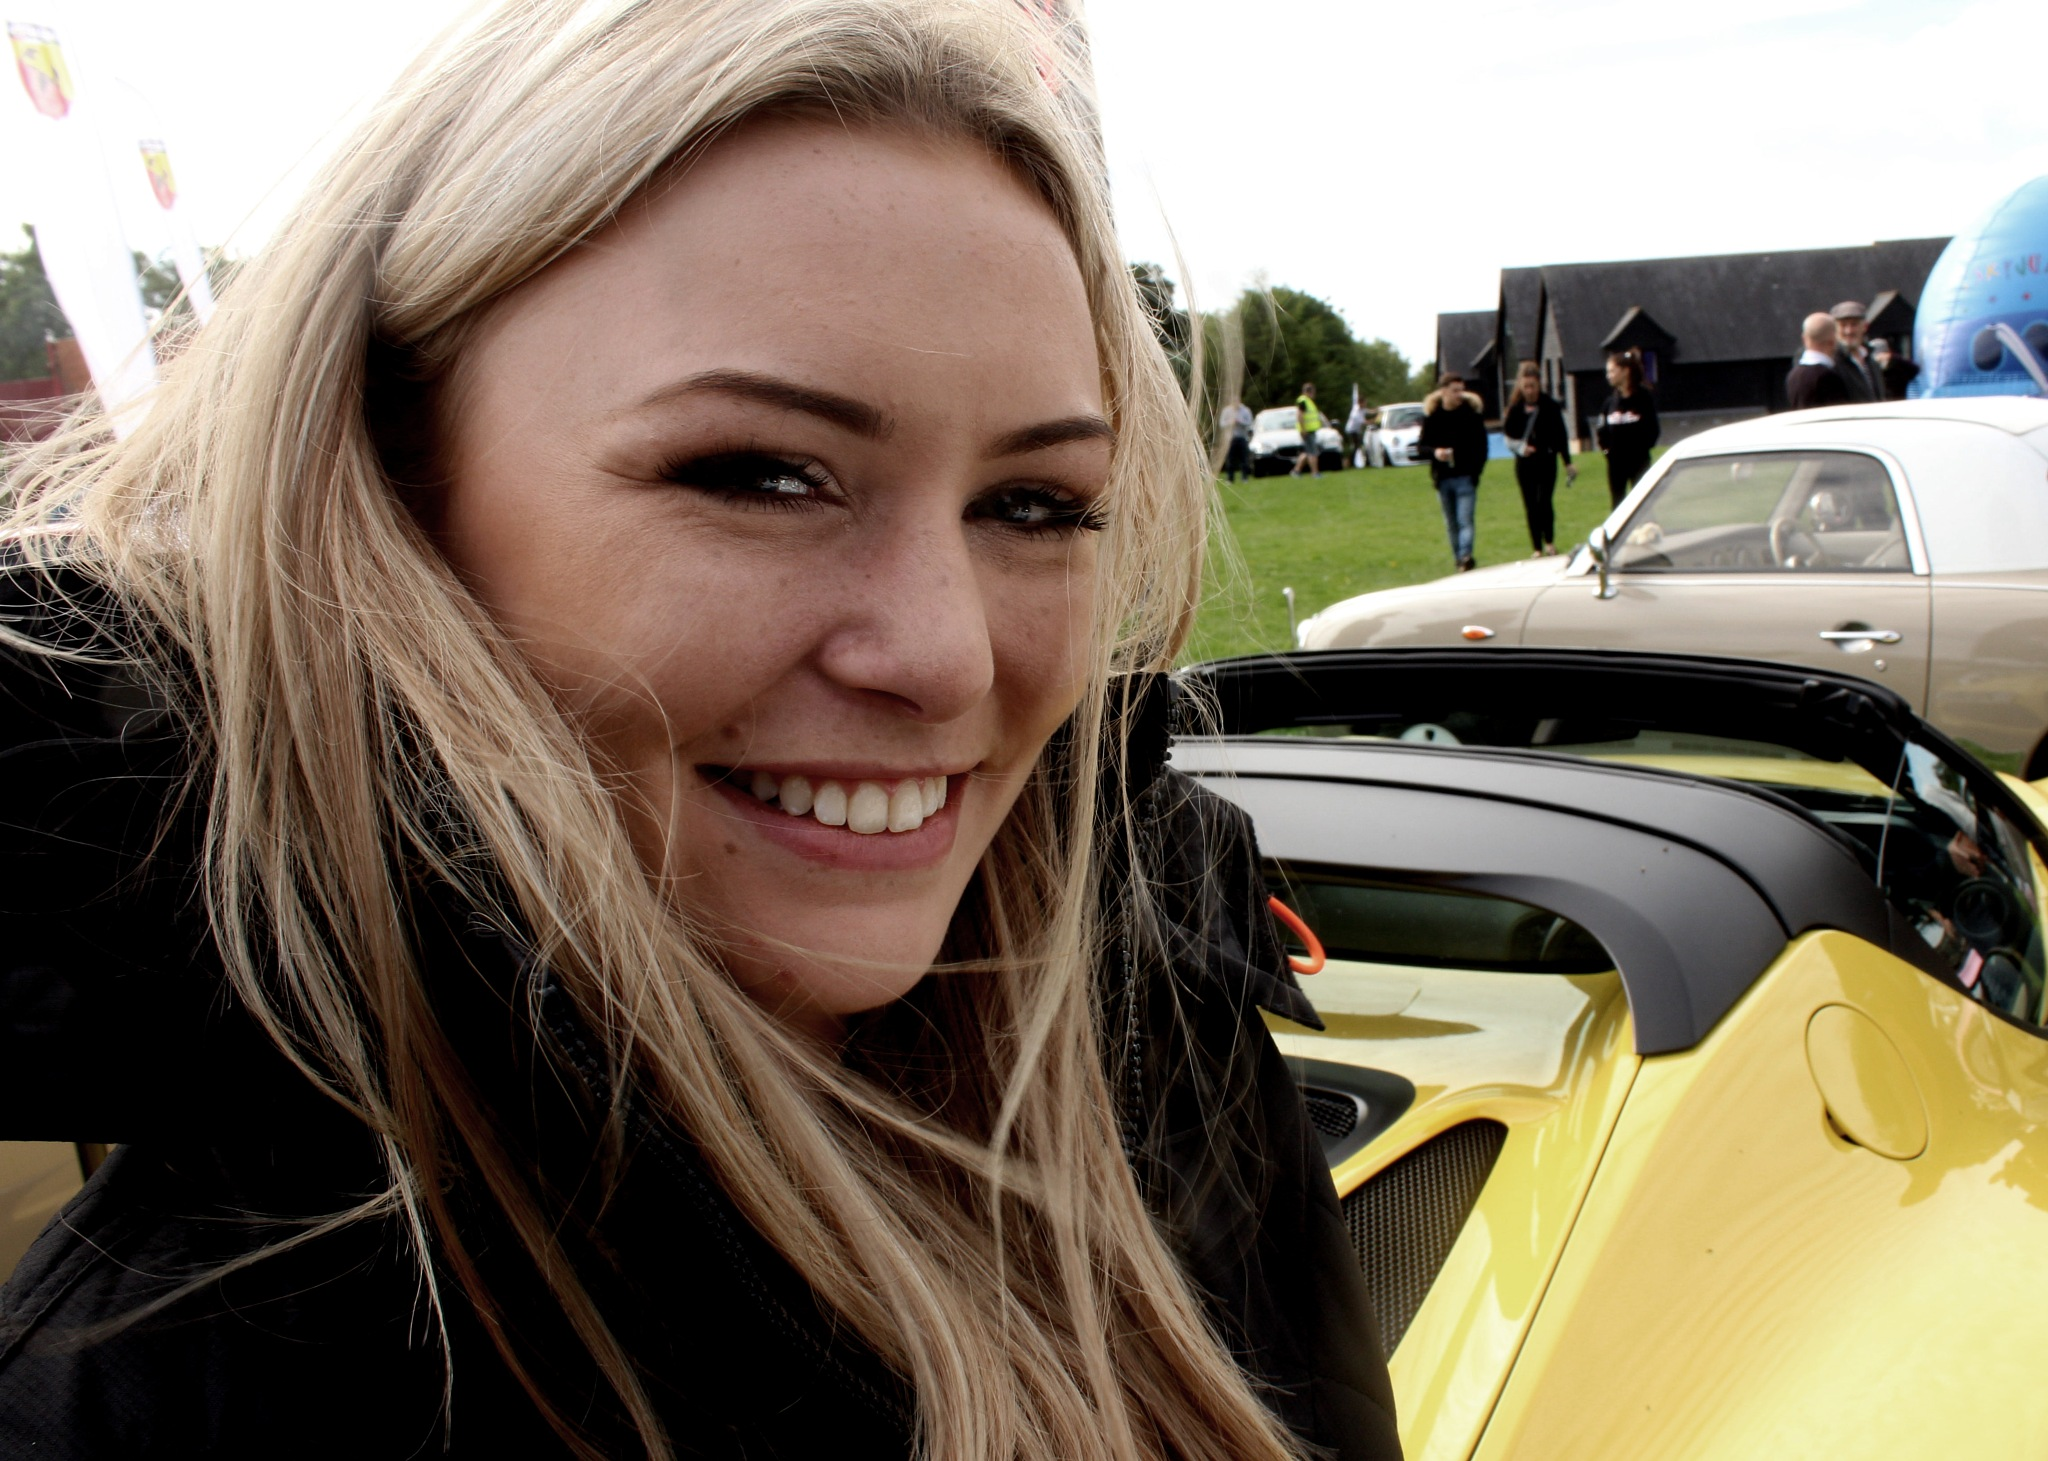 Girl at a Car Show by MartinIngley